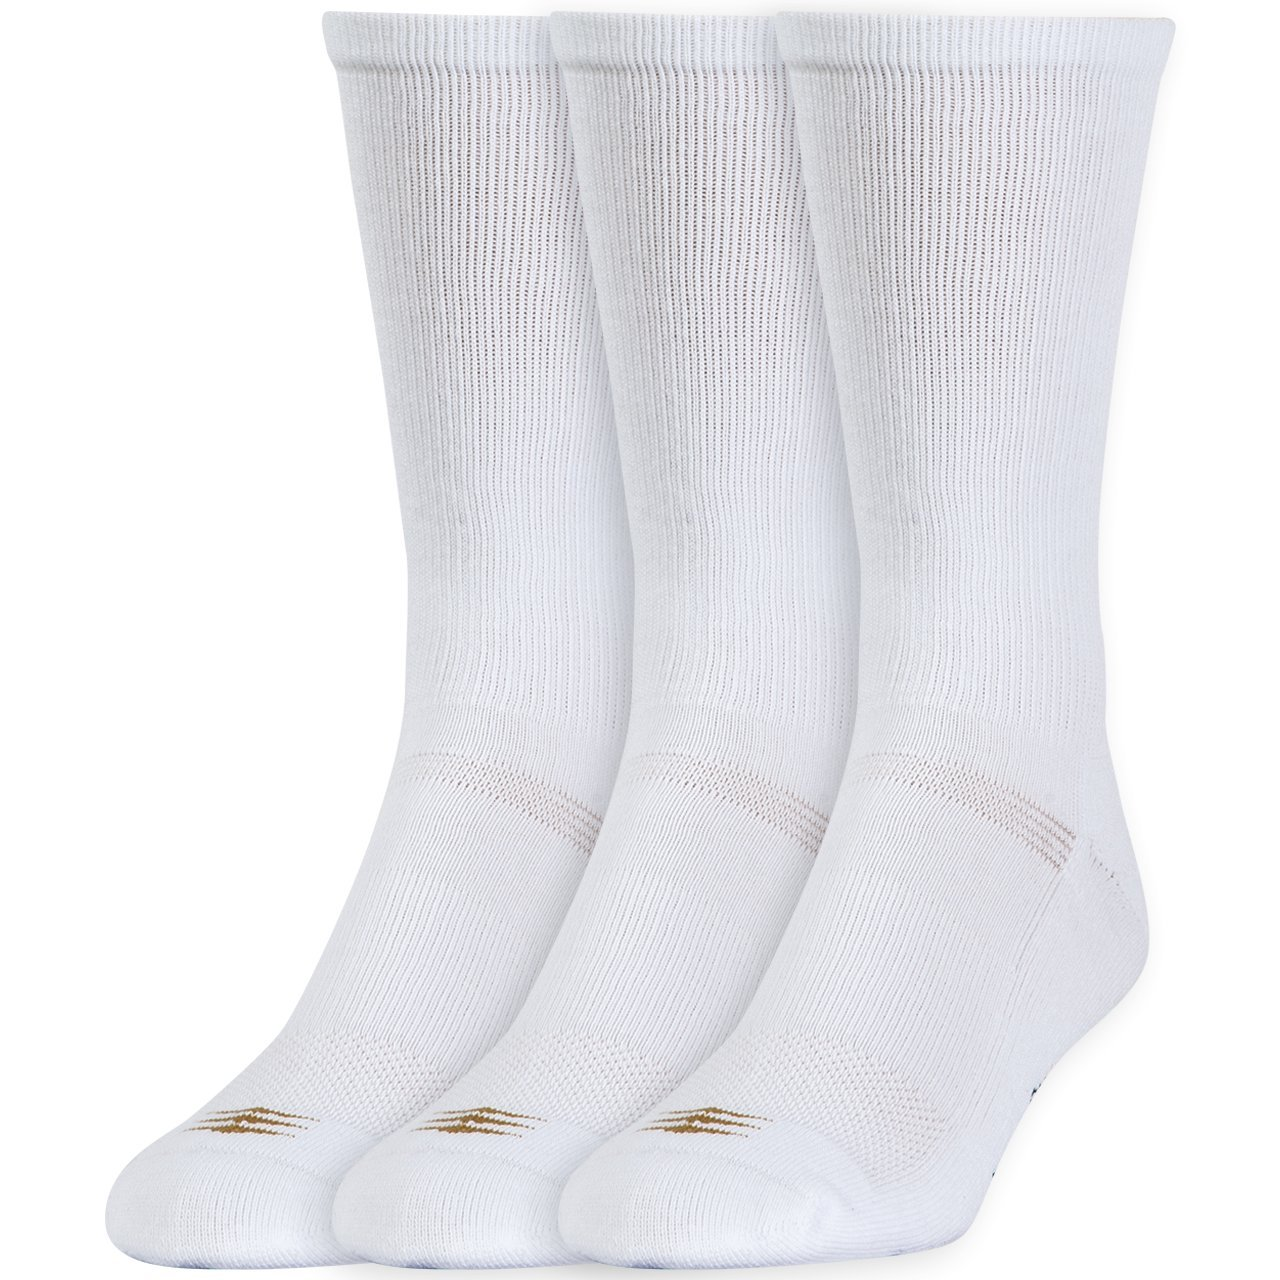 PowerSox Mens 3-Pack Cushion Crew Socks with Coolmax